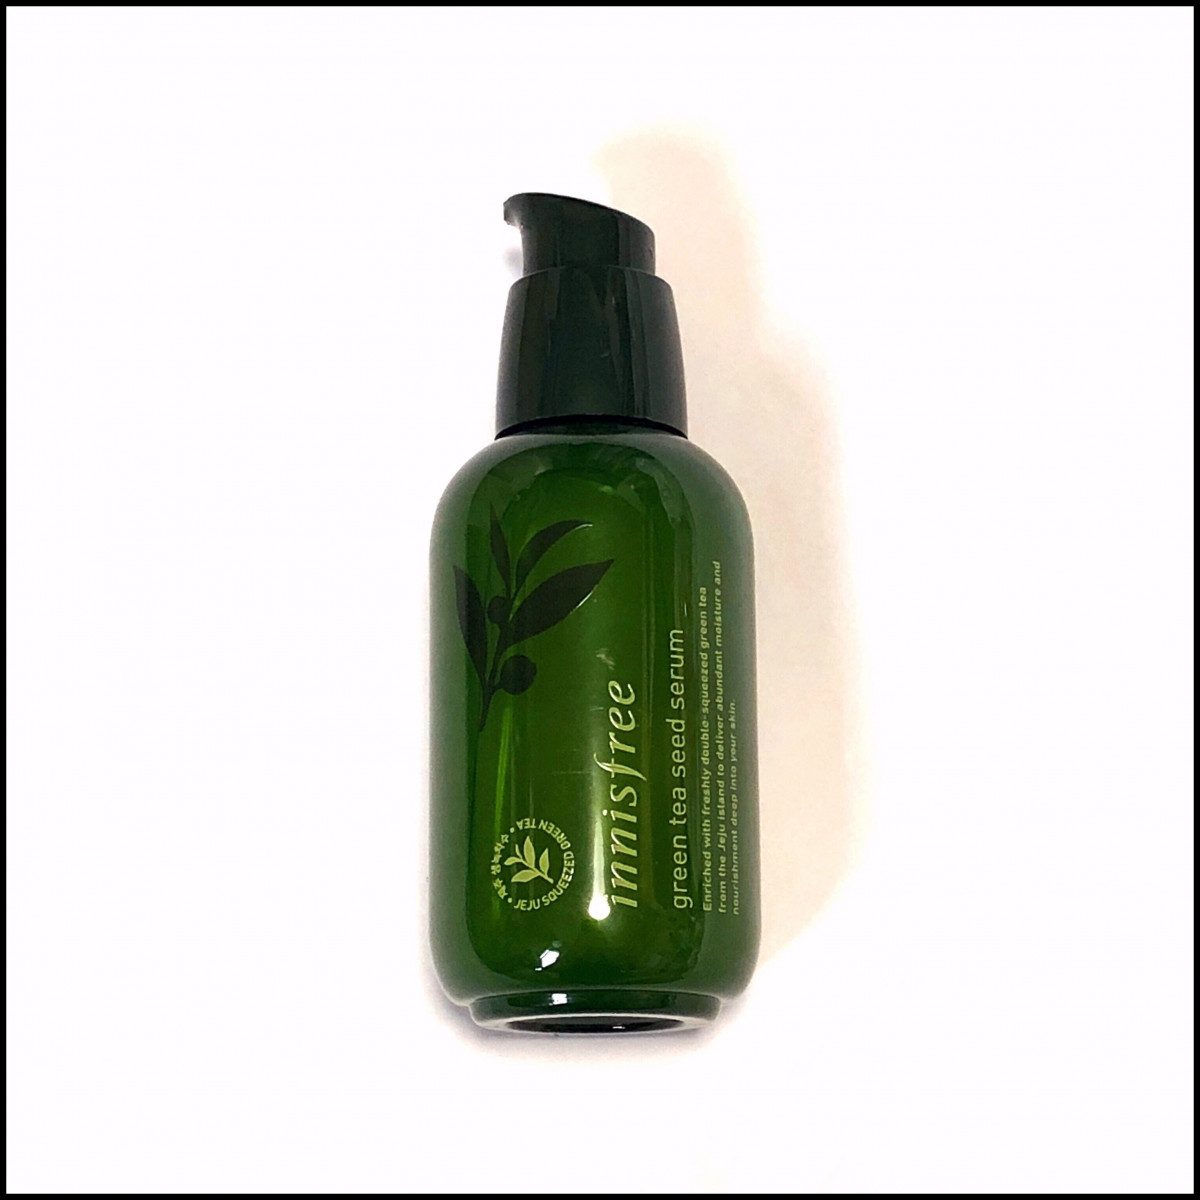 Greenteaseedserum